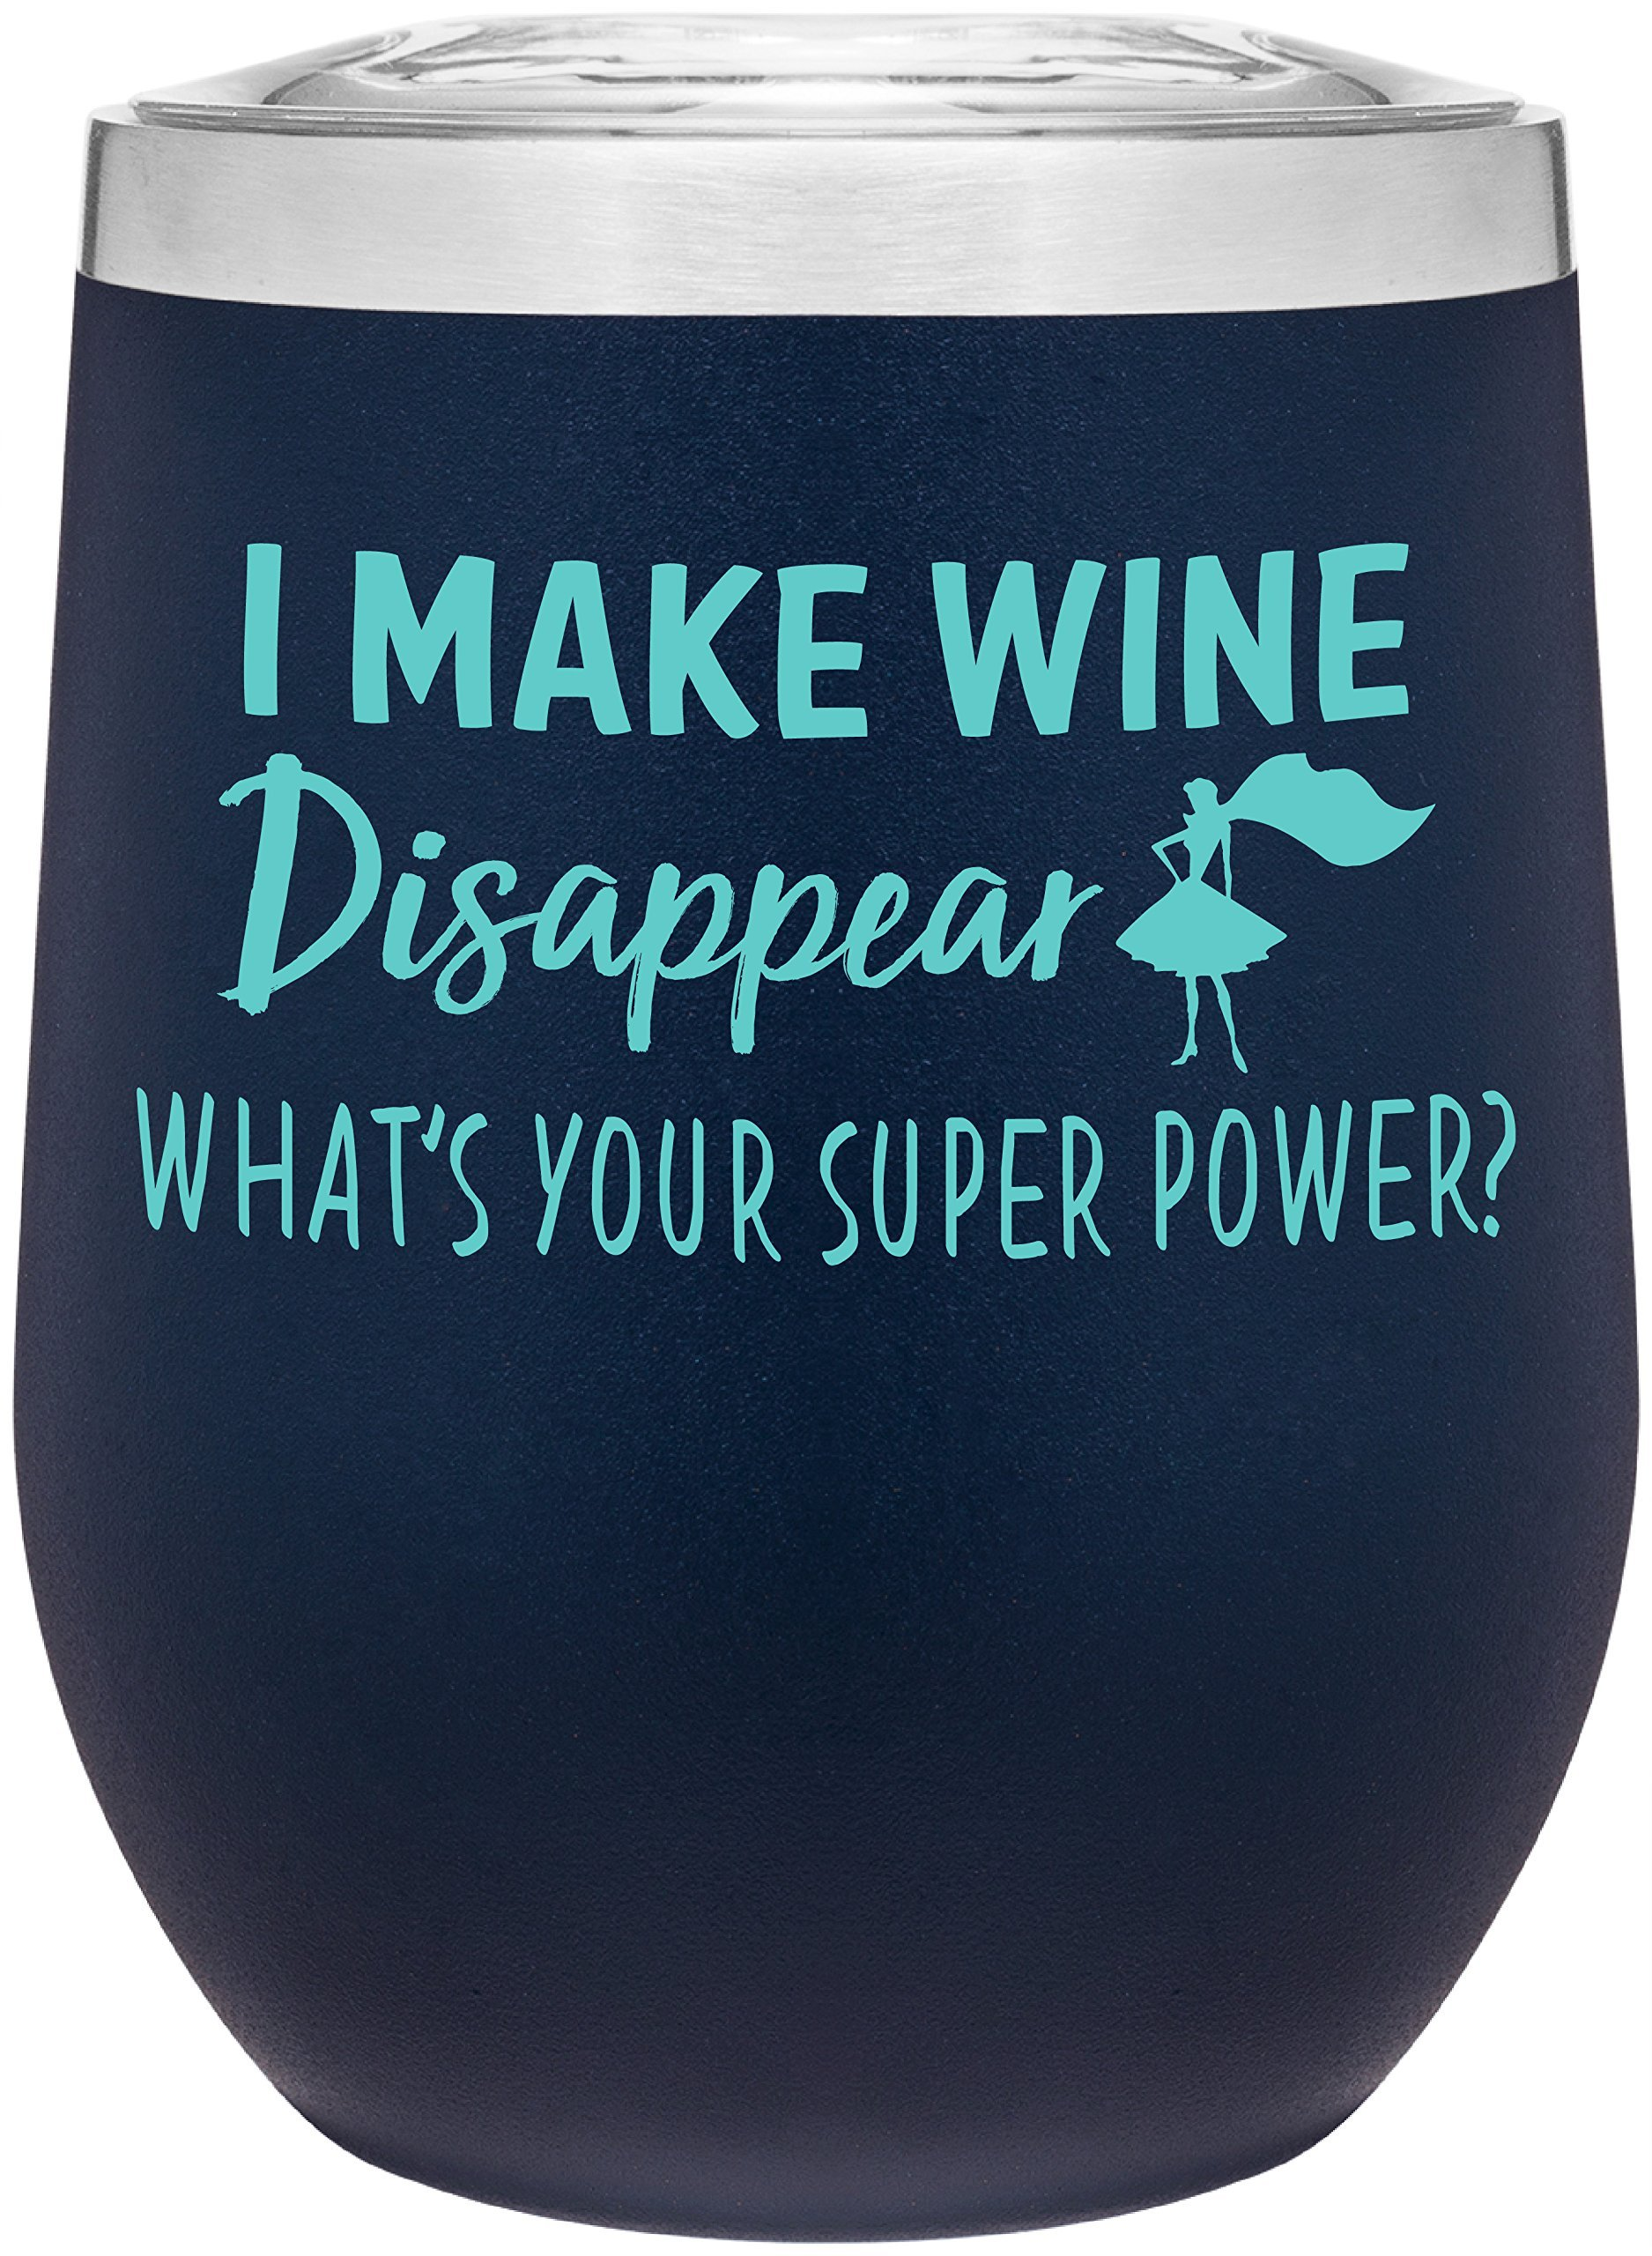 Stainless Steel 12 oz Wine Glass Tumbler with Lid | Double Wall Vacuum Insulated | Powder Coated | Unique Gift Idea for Women | Customized With Funny Sayings (Matte Blue)